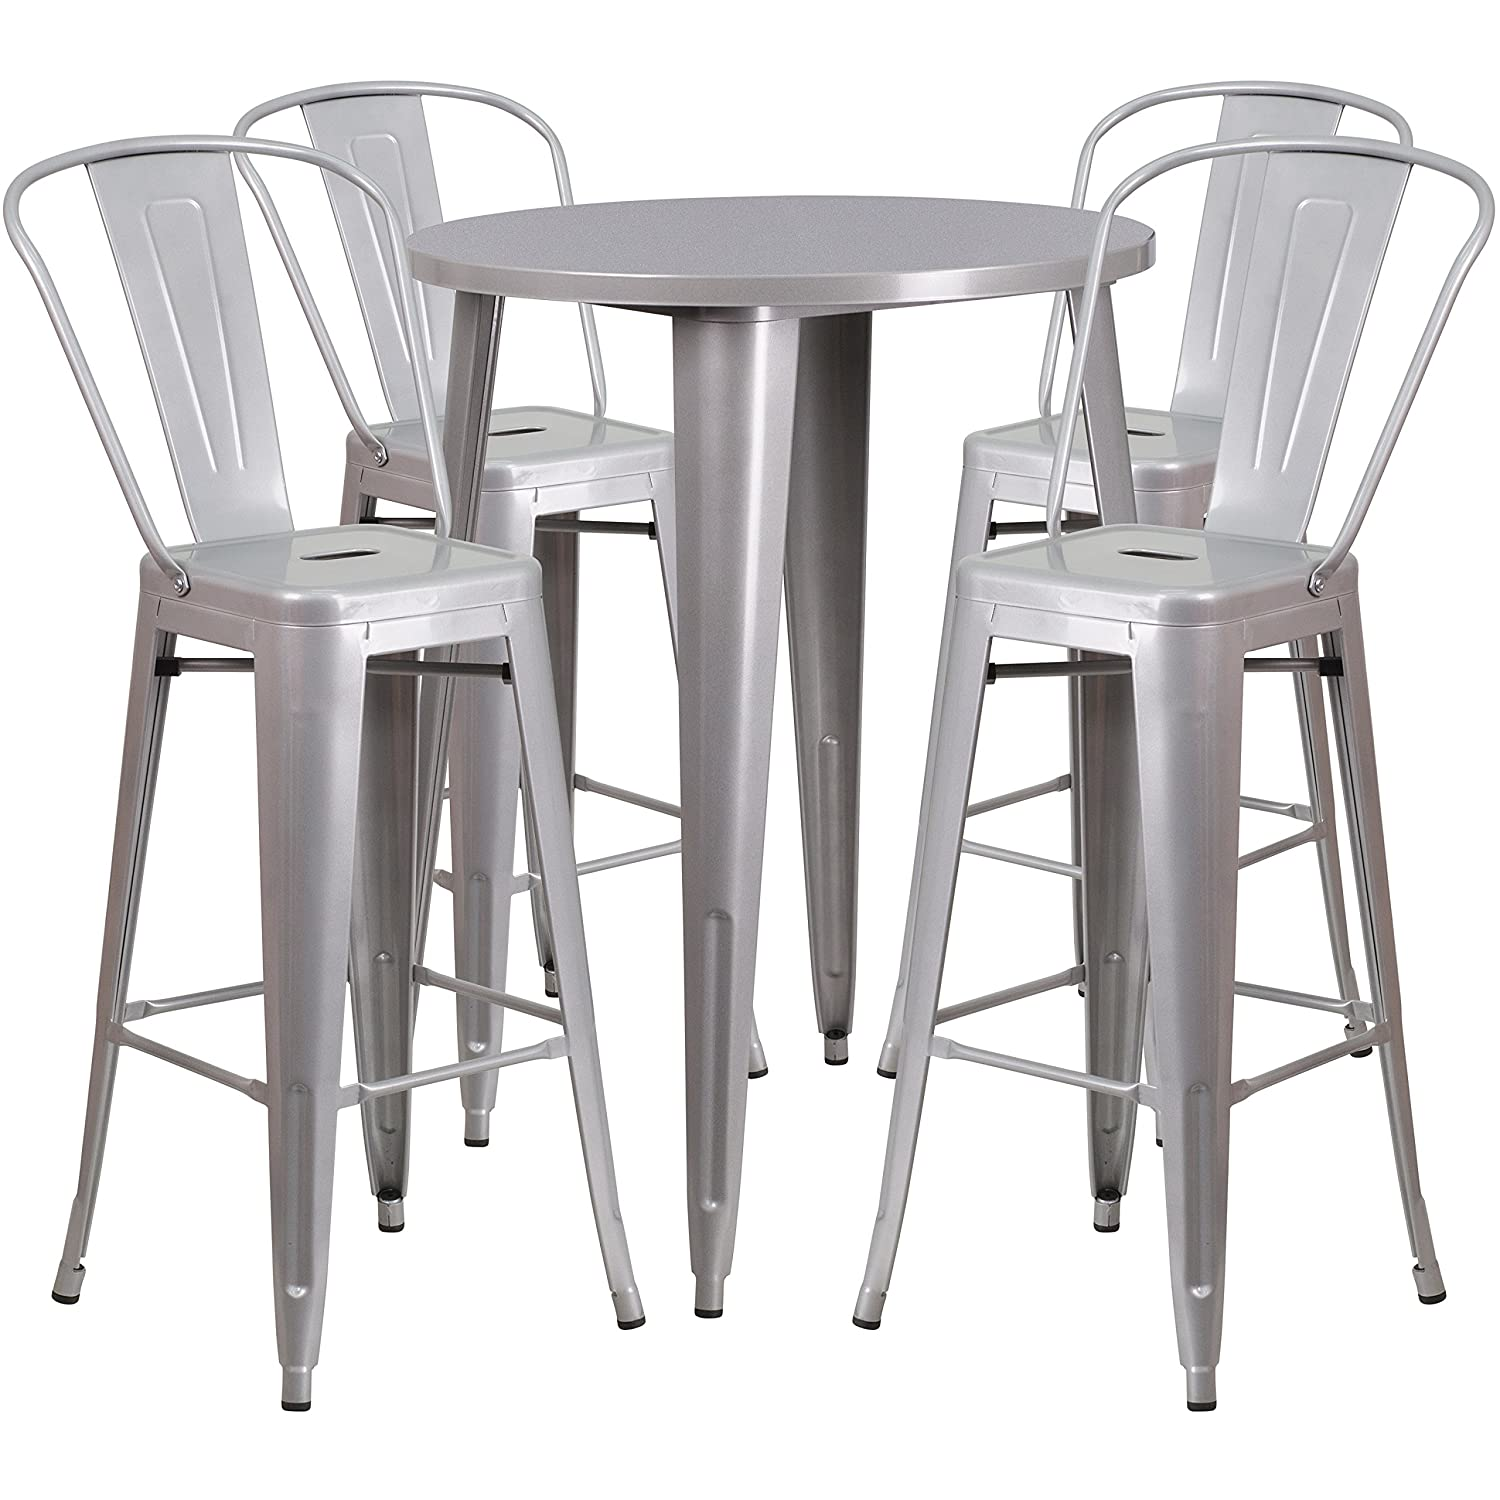 Amazon.com   Flash Furniture 30u0027u0027 Round Silver Metal Indoor Outdoor Bar  Table Set With 4 Cafe Stools   Table U0026 Chair Sets